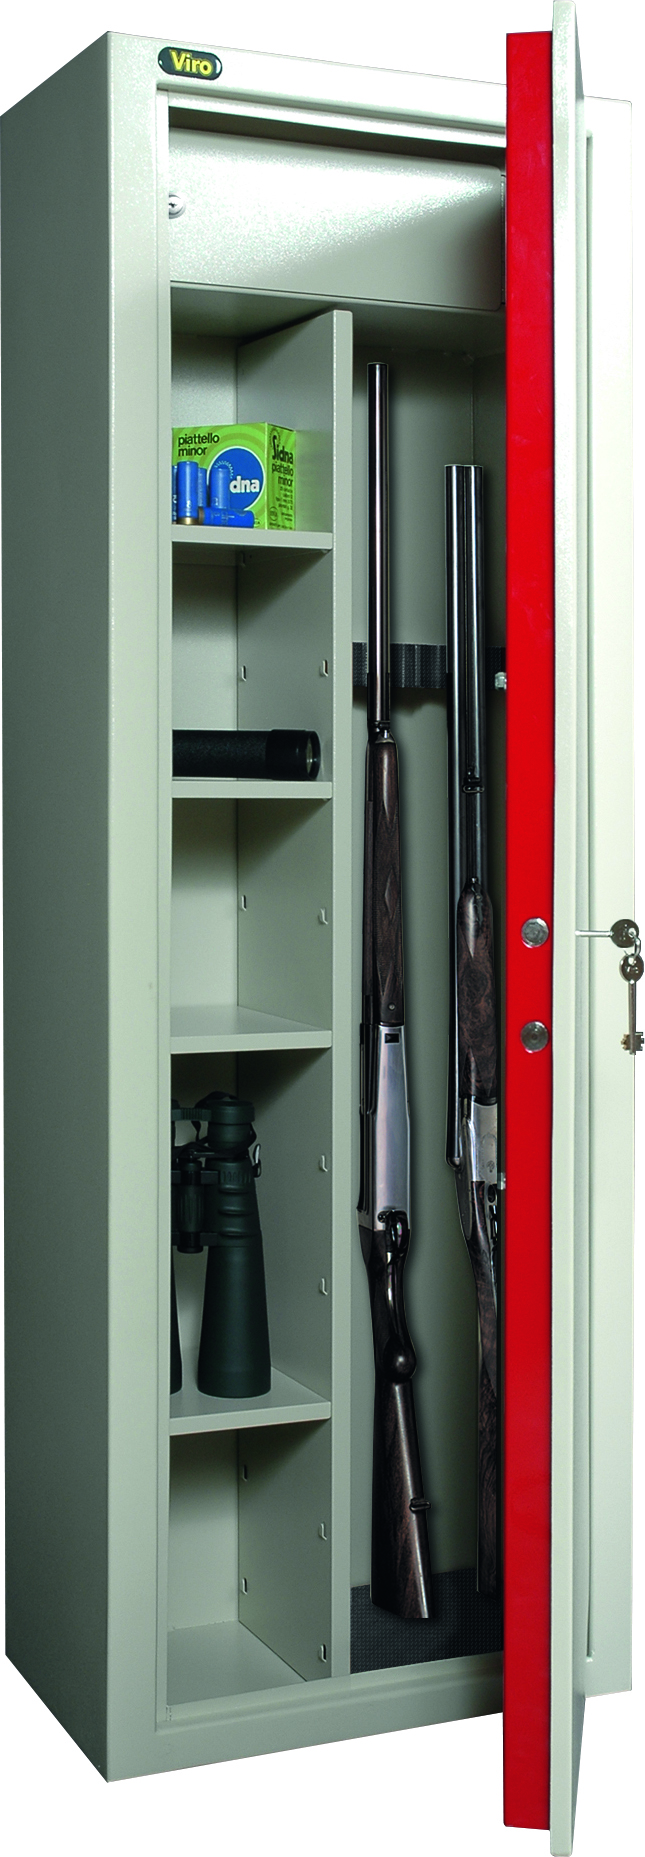 VIRO - With double bit keys - modular gun and valuables cabinet